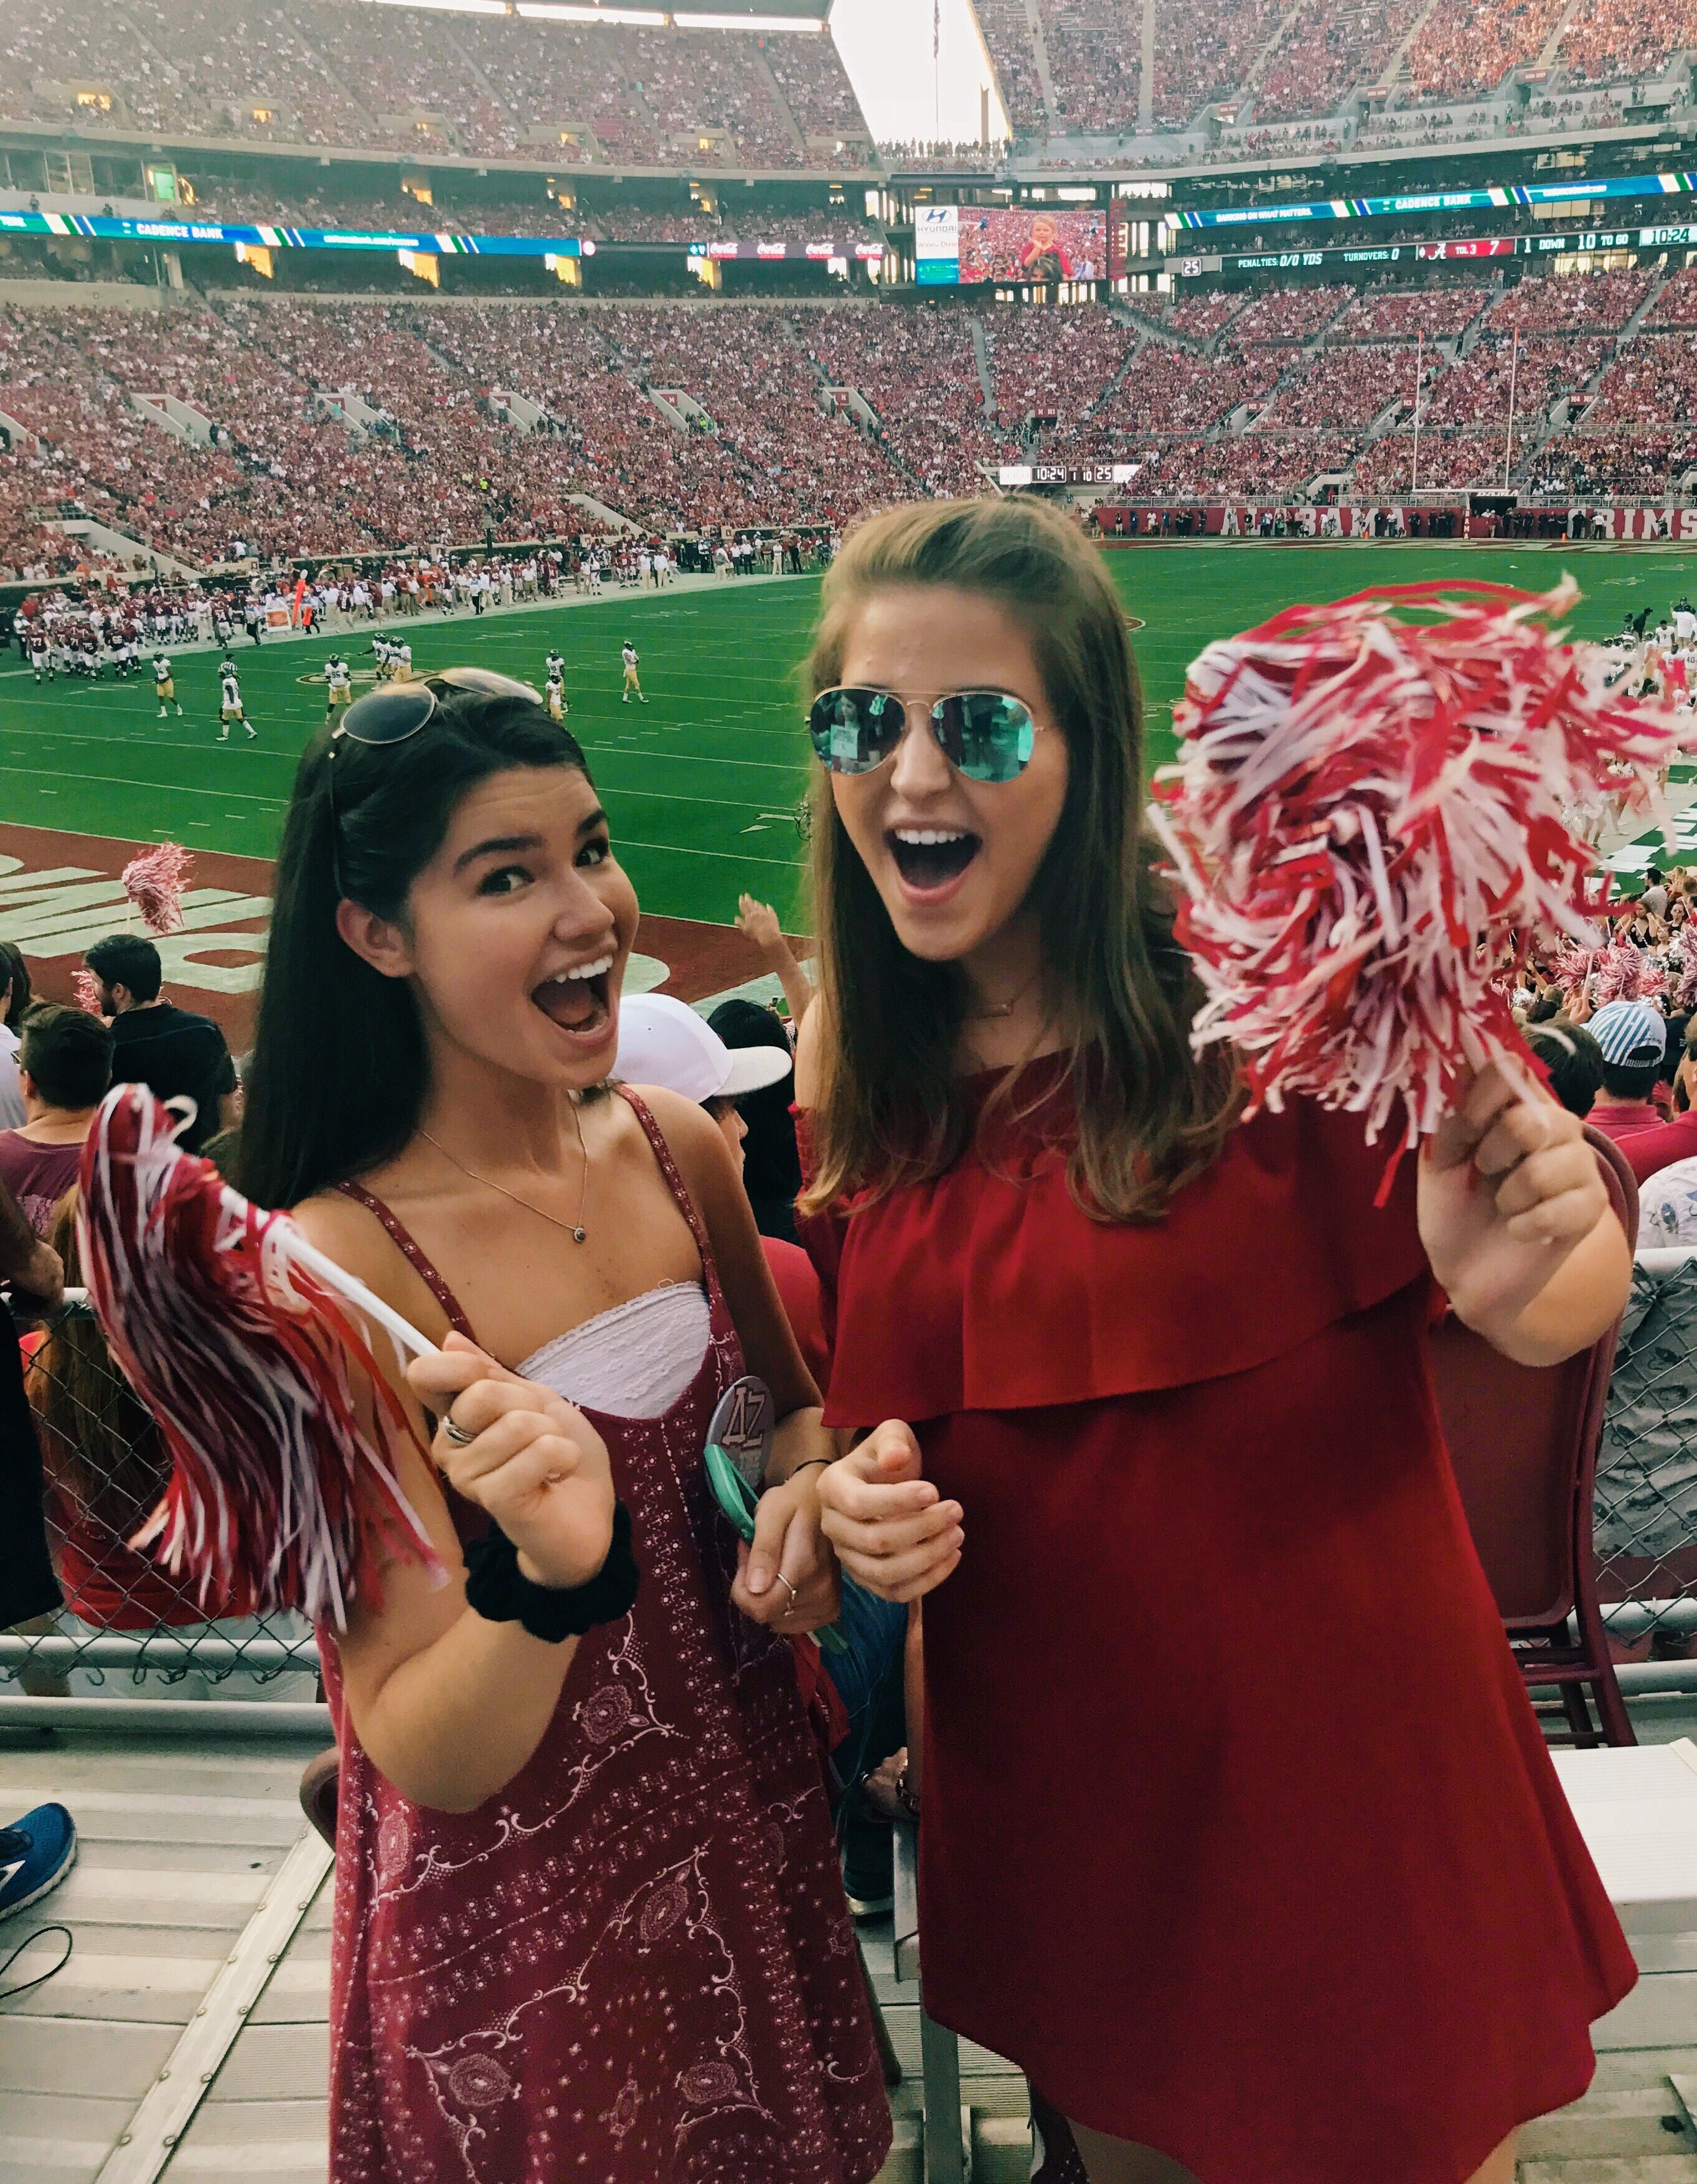 Alabama Game Day Outfit Sec College Football Gameday Outfit